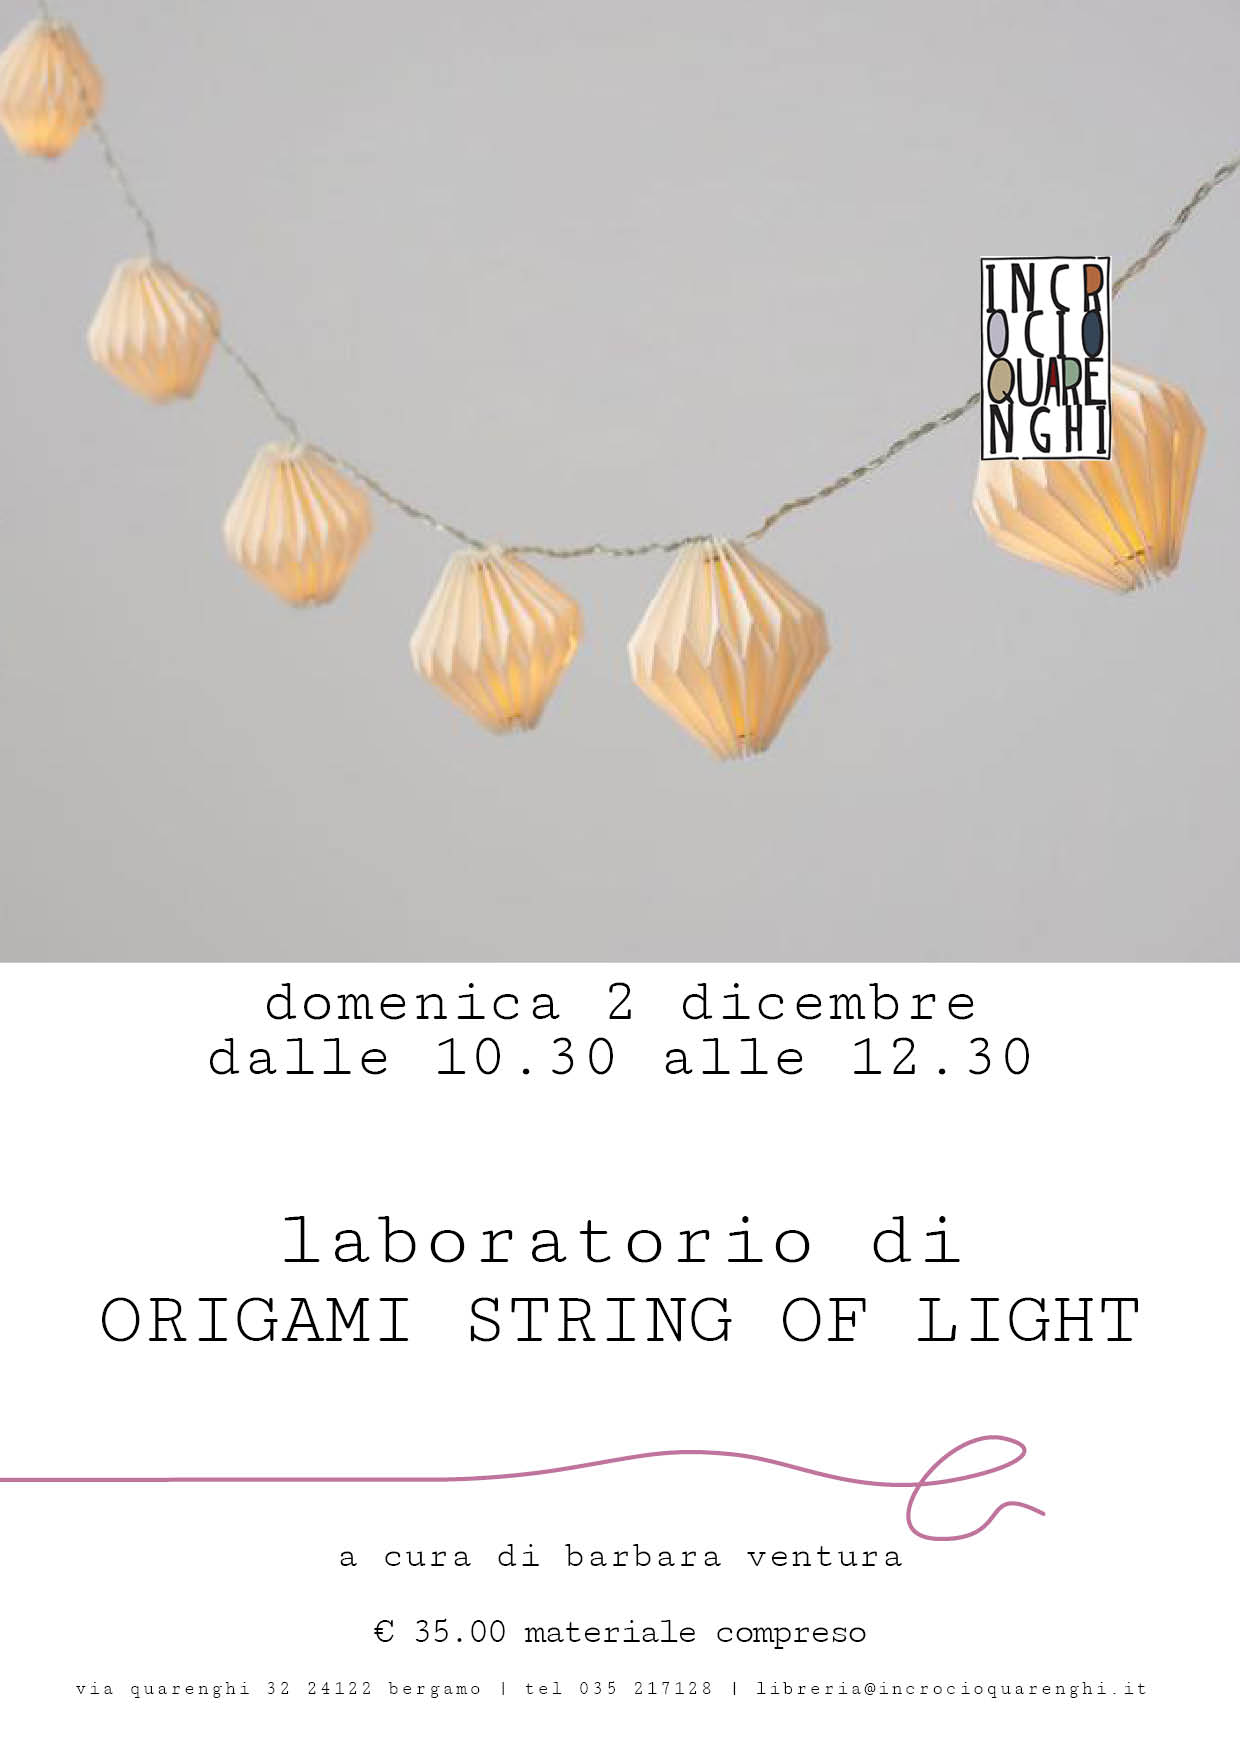 Origami String of Light: laboratorio con Barbara Ventura